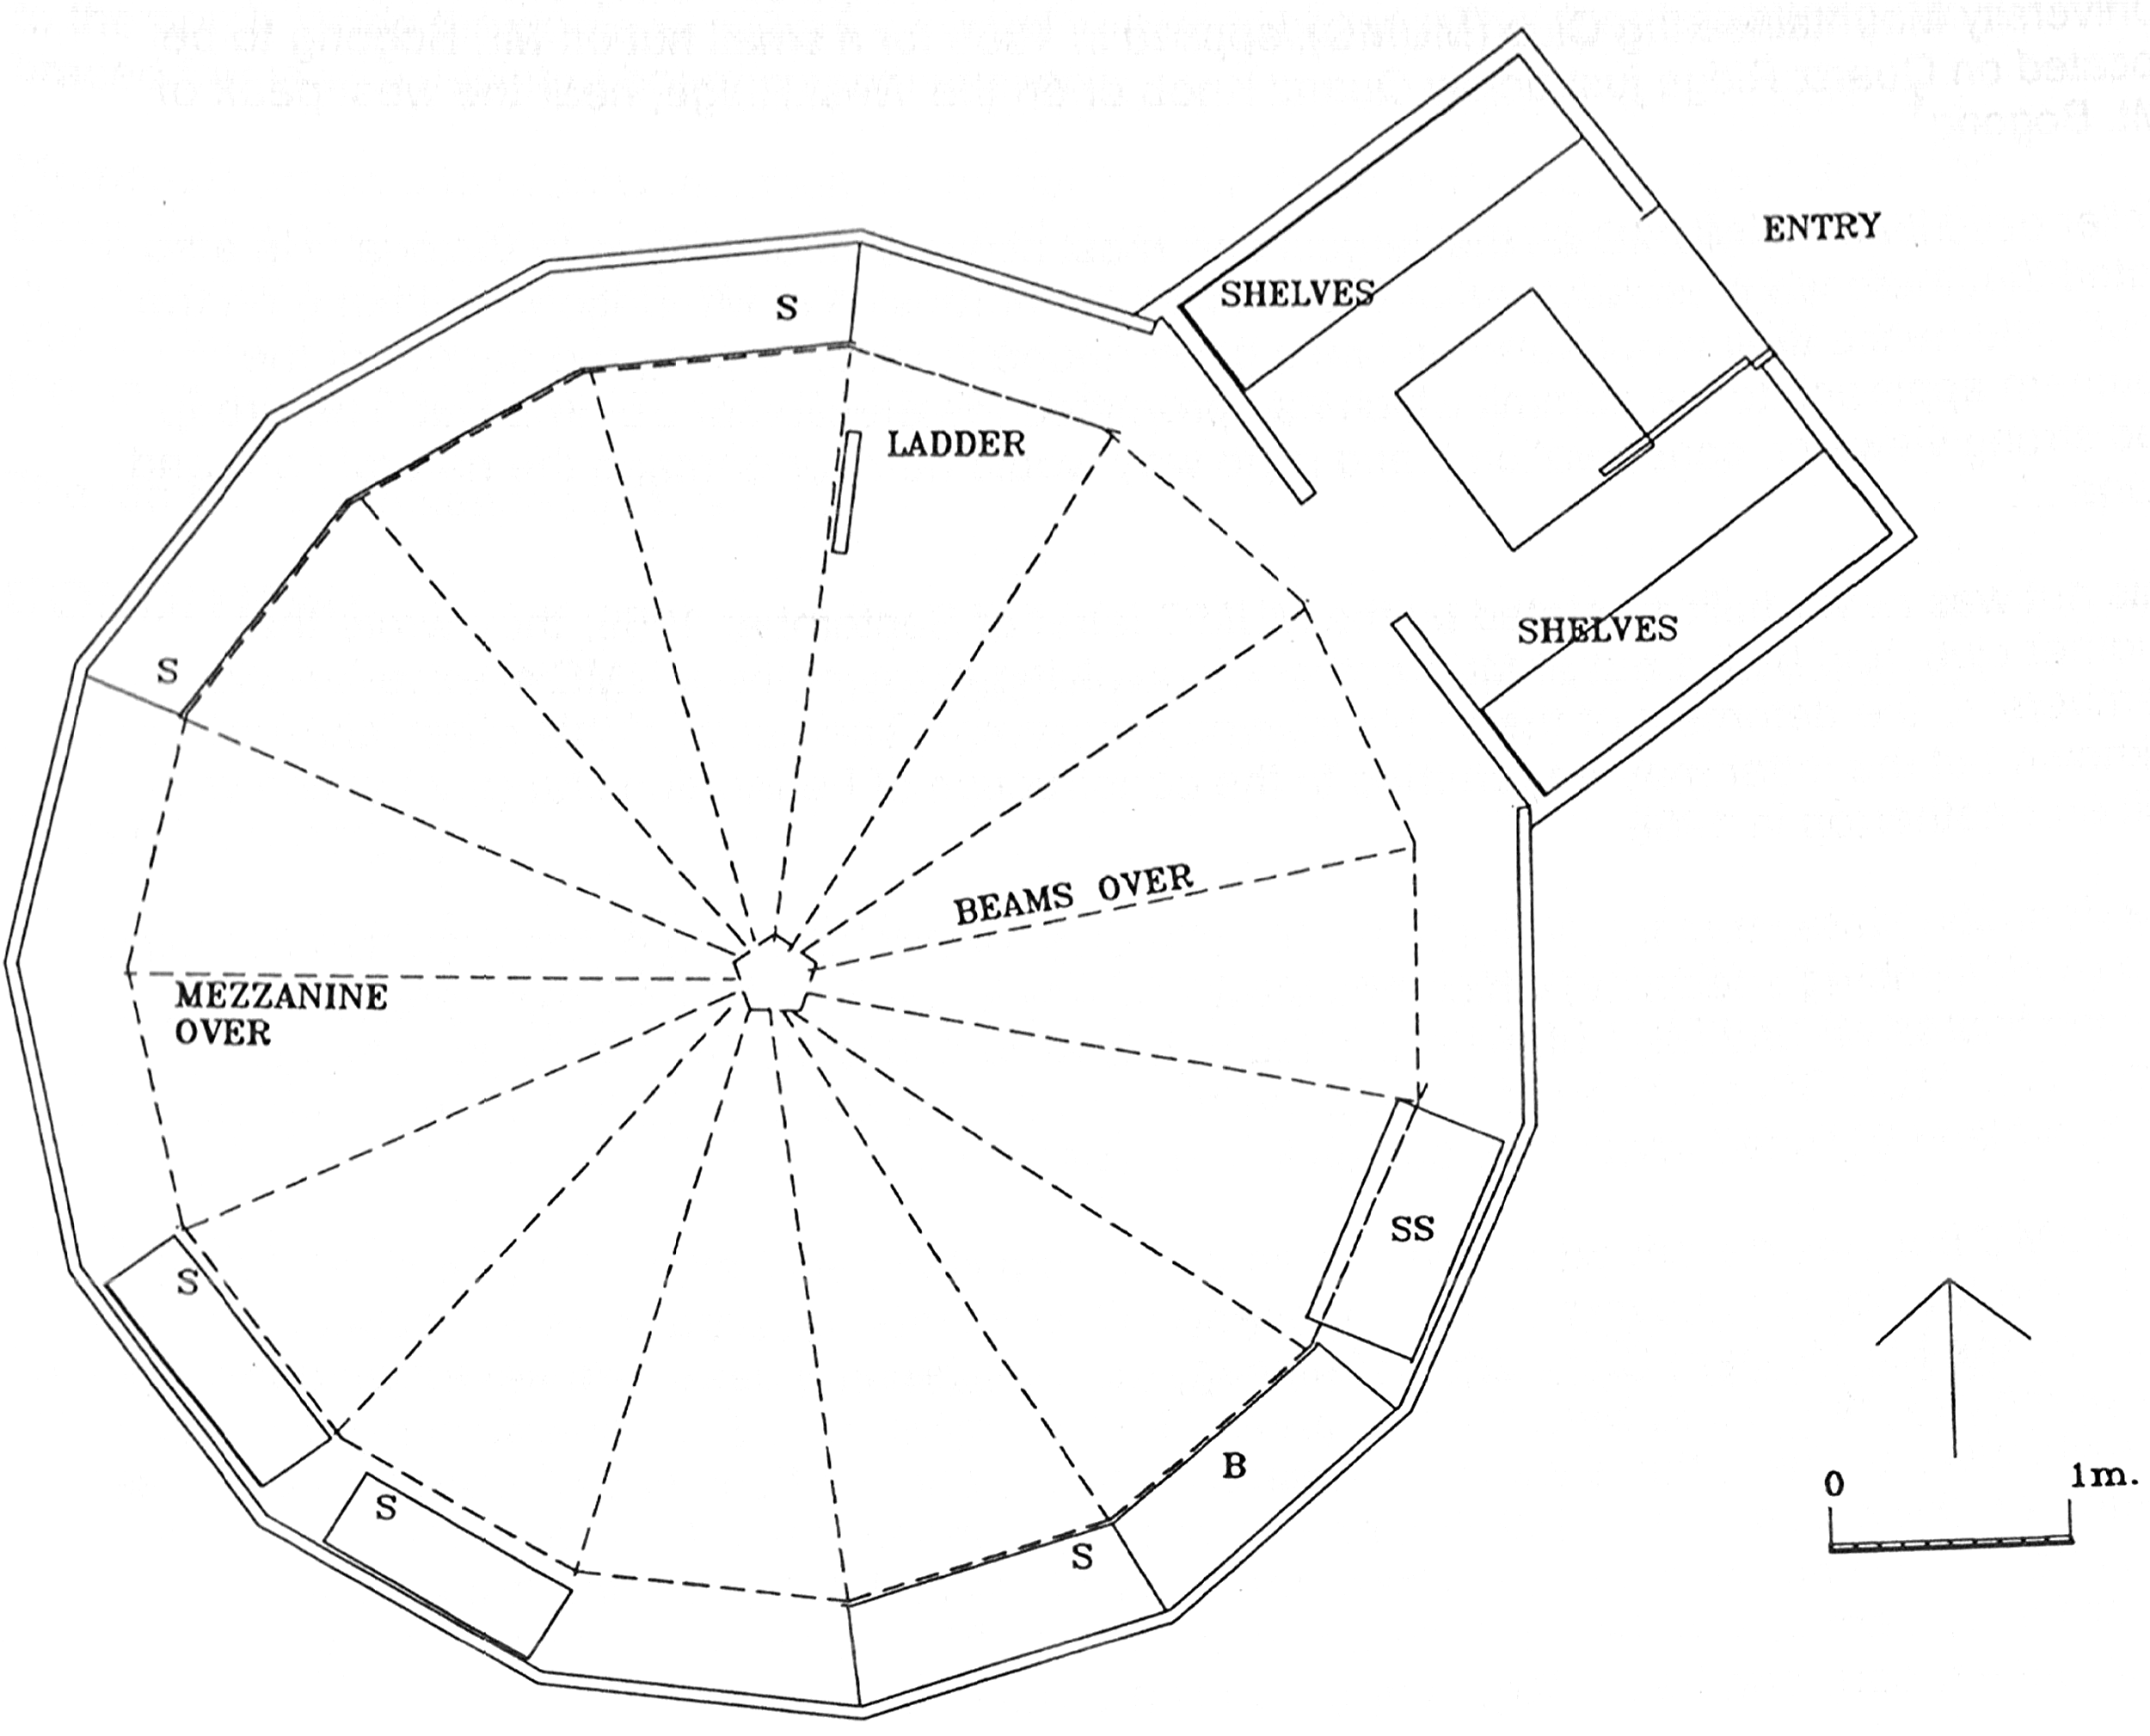 MUMC Hut floorplan. From  Graeme Butler & Associates . Victorian alpine huts heritage survey, 1996. p 204. Used with permission.